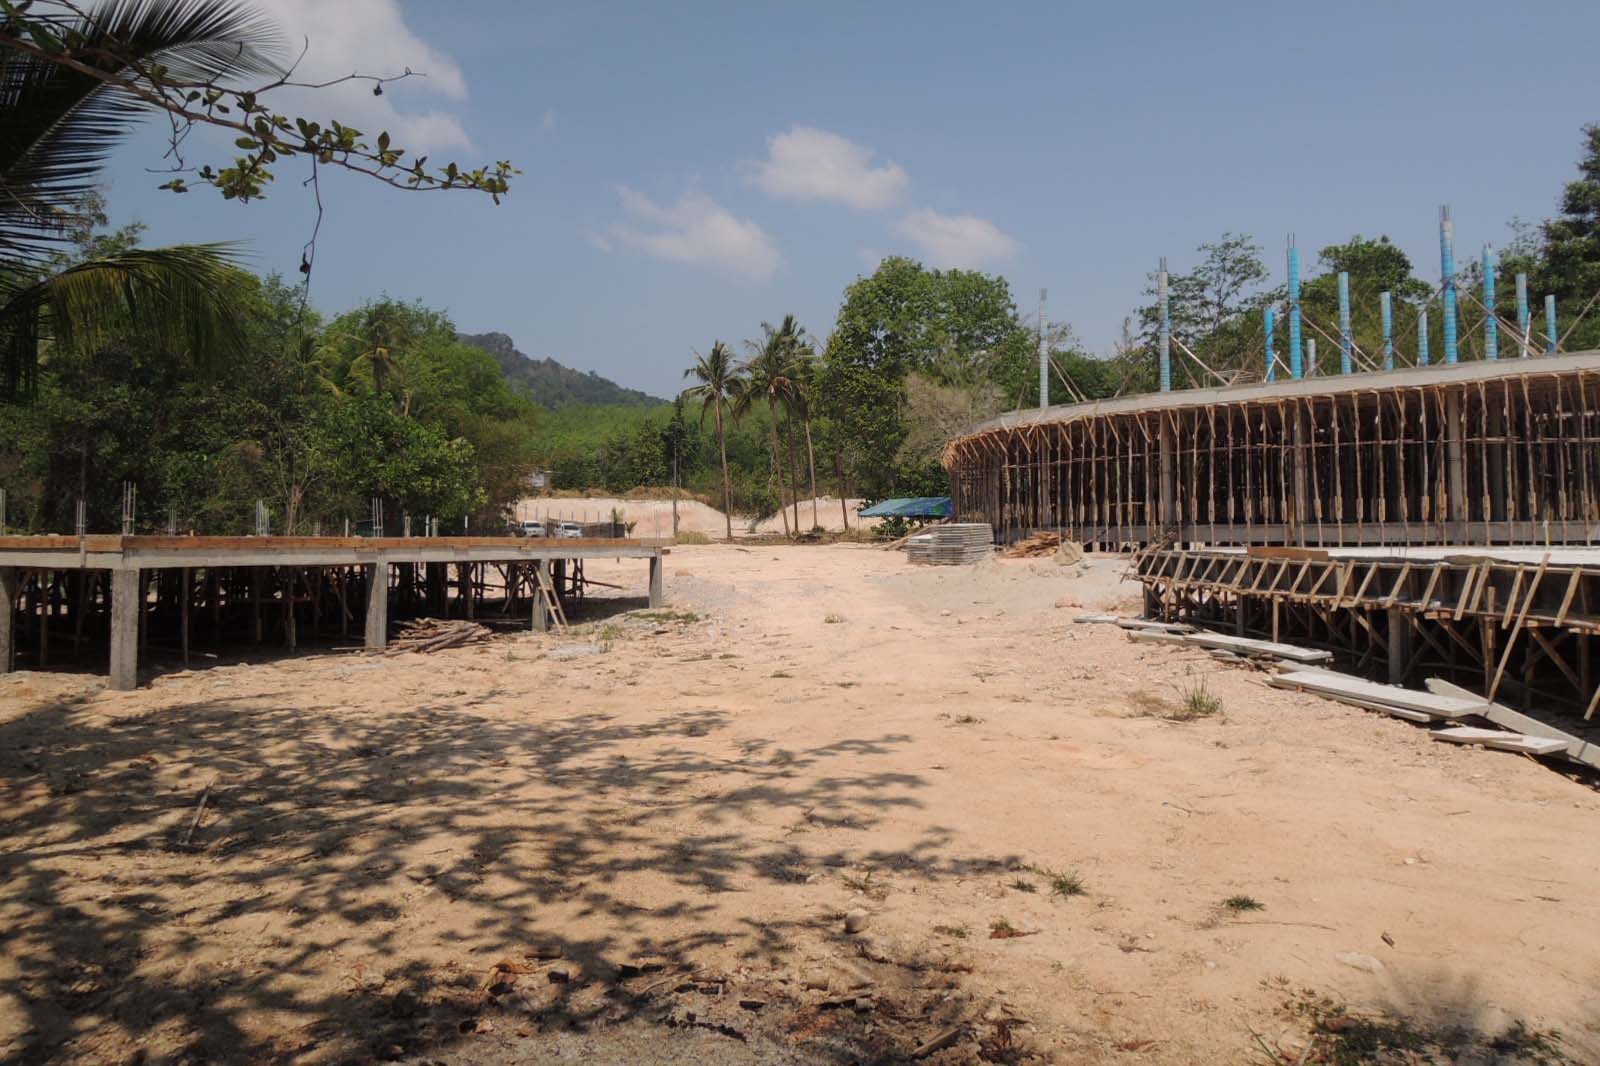 for sale - 4.5 Rai, 7200sqm Near Seafront Land with Natural Mangrove - Ao Nammao, Krabi